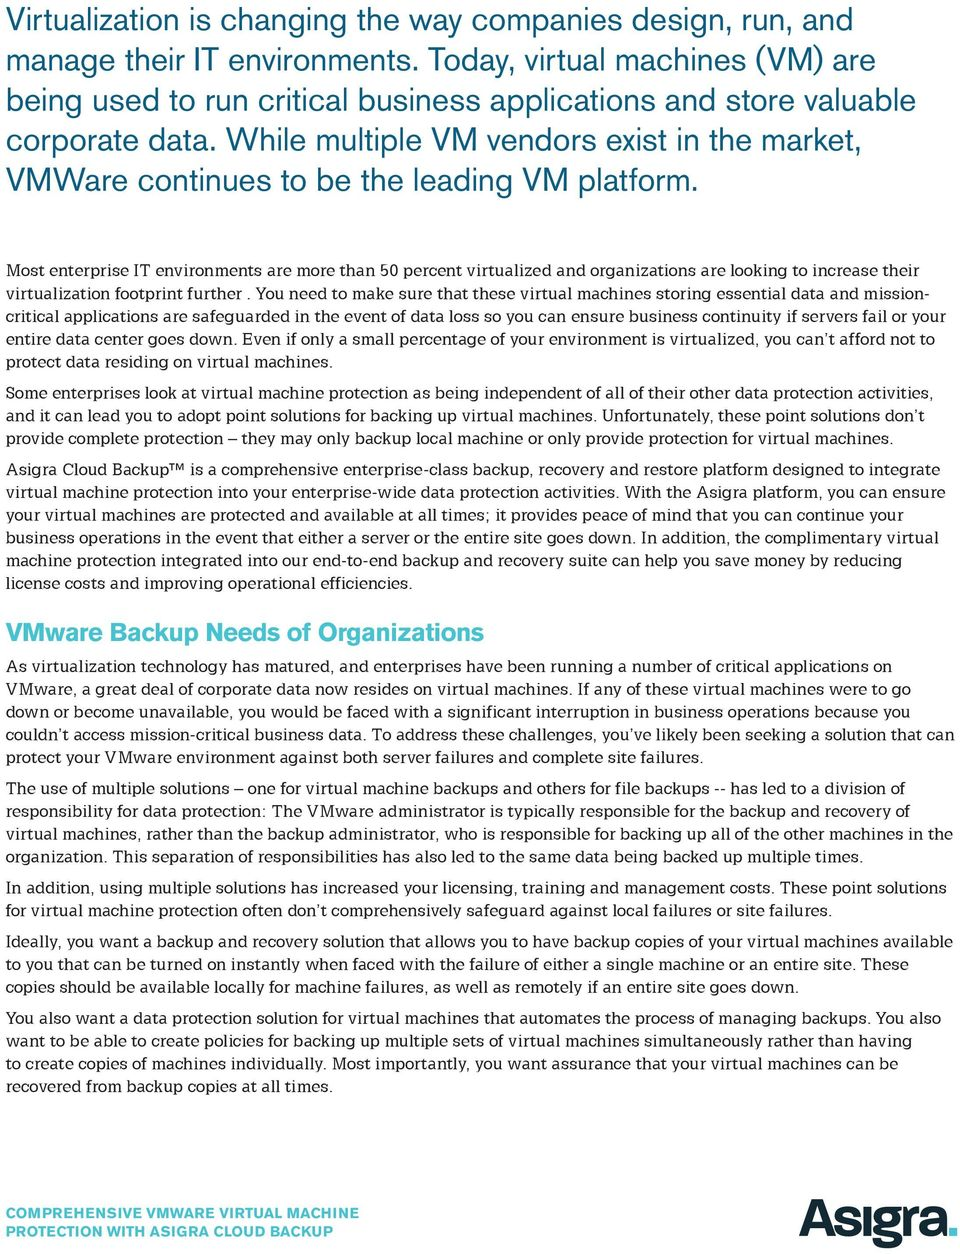 While multiple VM vendors exist in the market, VMWare continues to be the leading VM platform.